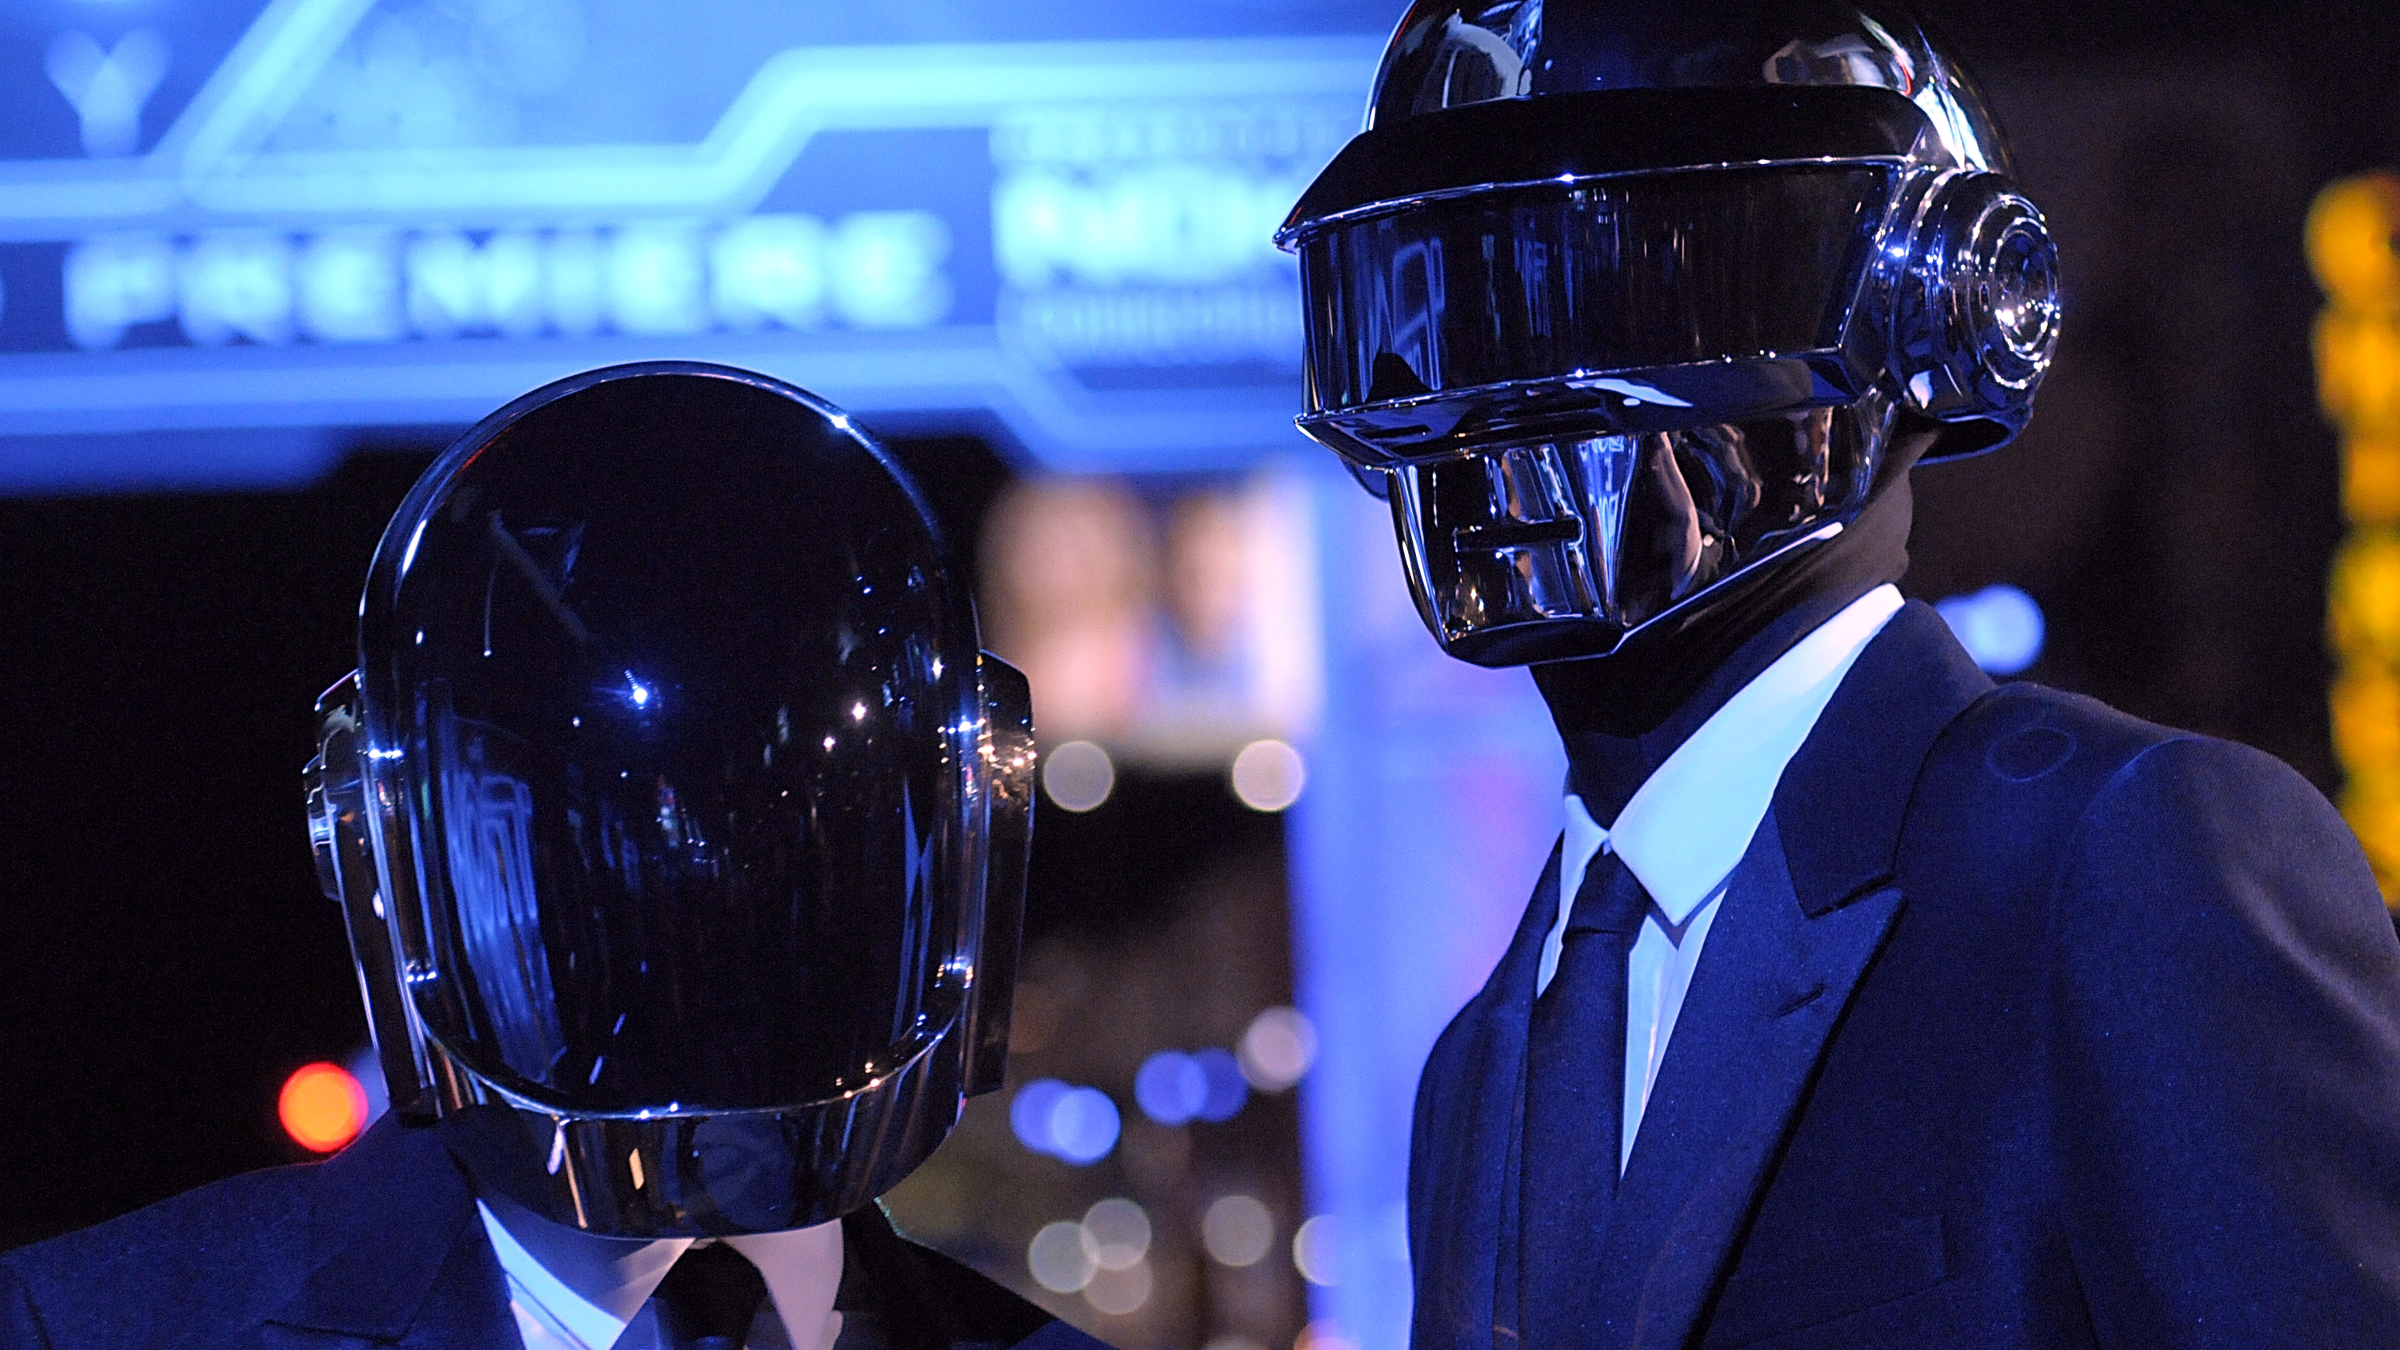 """In this Dec. 11, 2010 file photo, musician Guy-Manuel de Homem-Christo, left, and musician Thomas Bangalter of the duo Daft Punk arrive at the premiere of the feature film """"Tron: Legacy"""" in Los Angeles. Daft Punk have set a record on Spotify. The music service says the French electronic duo's song, """"Get Lucky,"""" had the biggest streaming day for a single track on Friday, April 19, 2013, in the United States and the United Kingdom. Spotify wouldn't release the number of streams."""